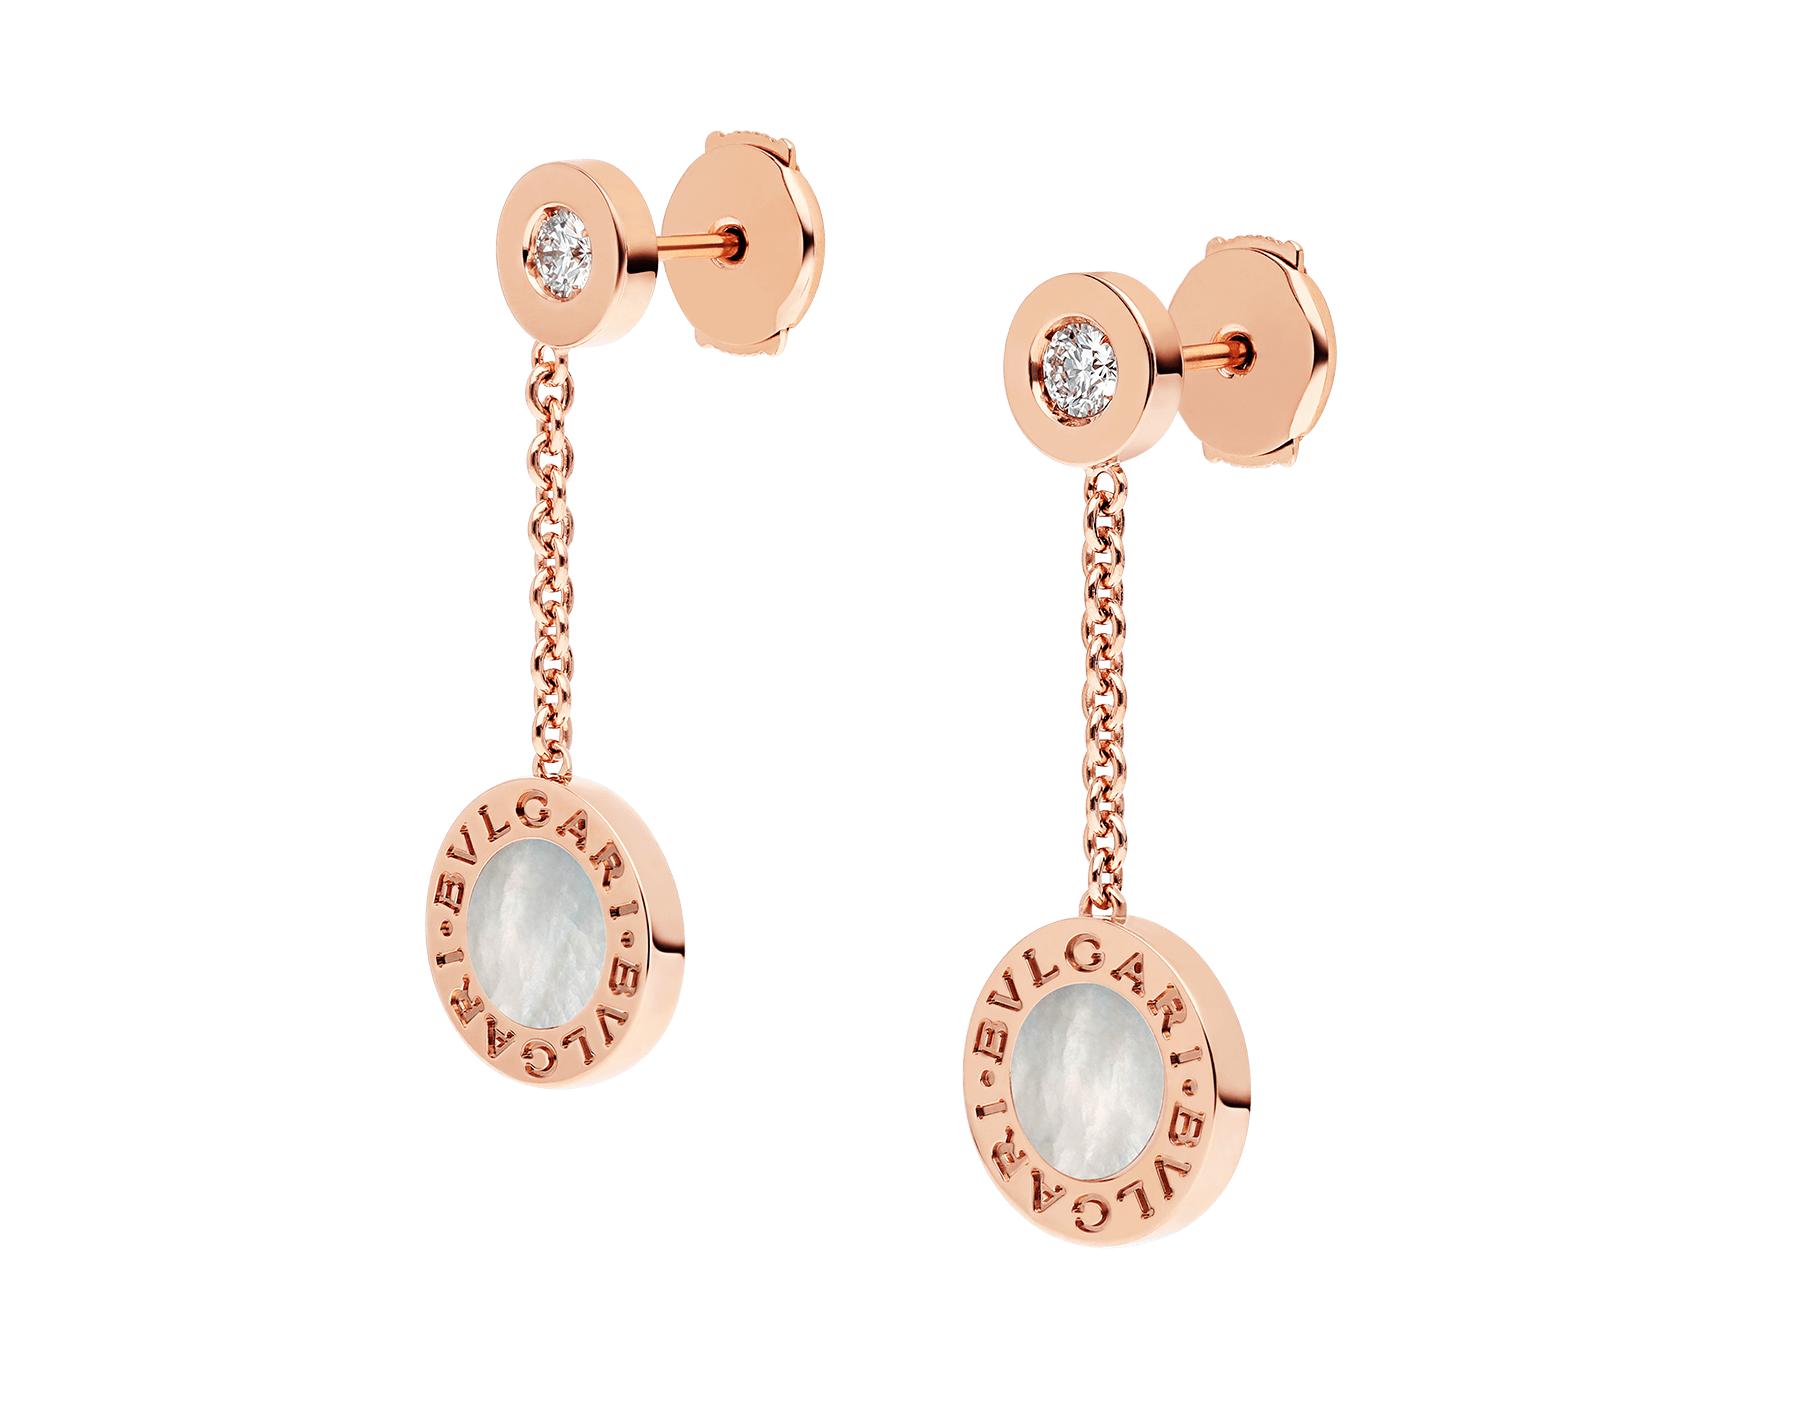 BVLGARI BVLGARI 18 kt rose gold earrings set with mother-of-pearl and diamonds 351086 image 2